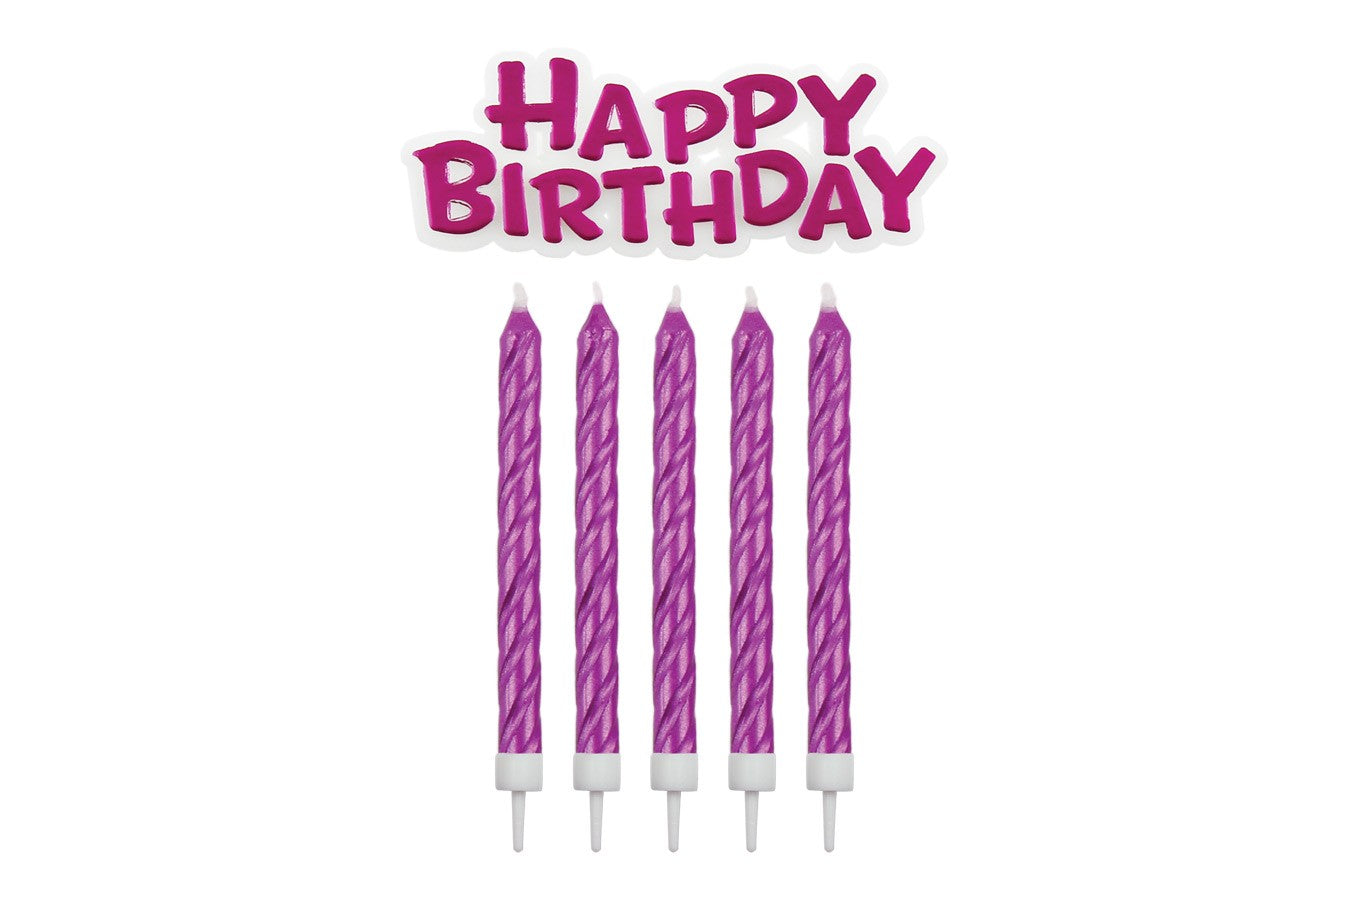 Happy Birthday Candle and Motto set - Pink - PME